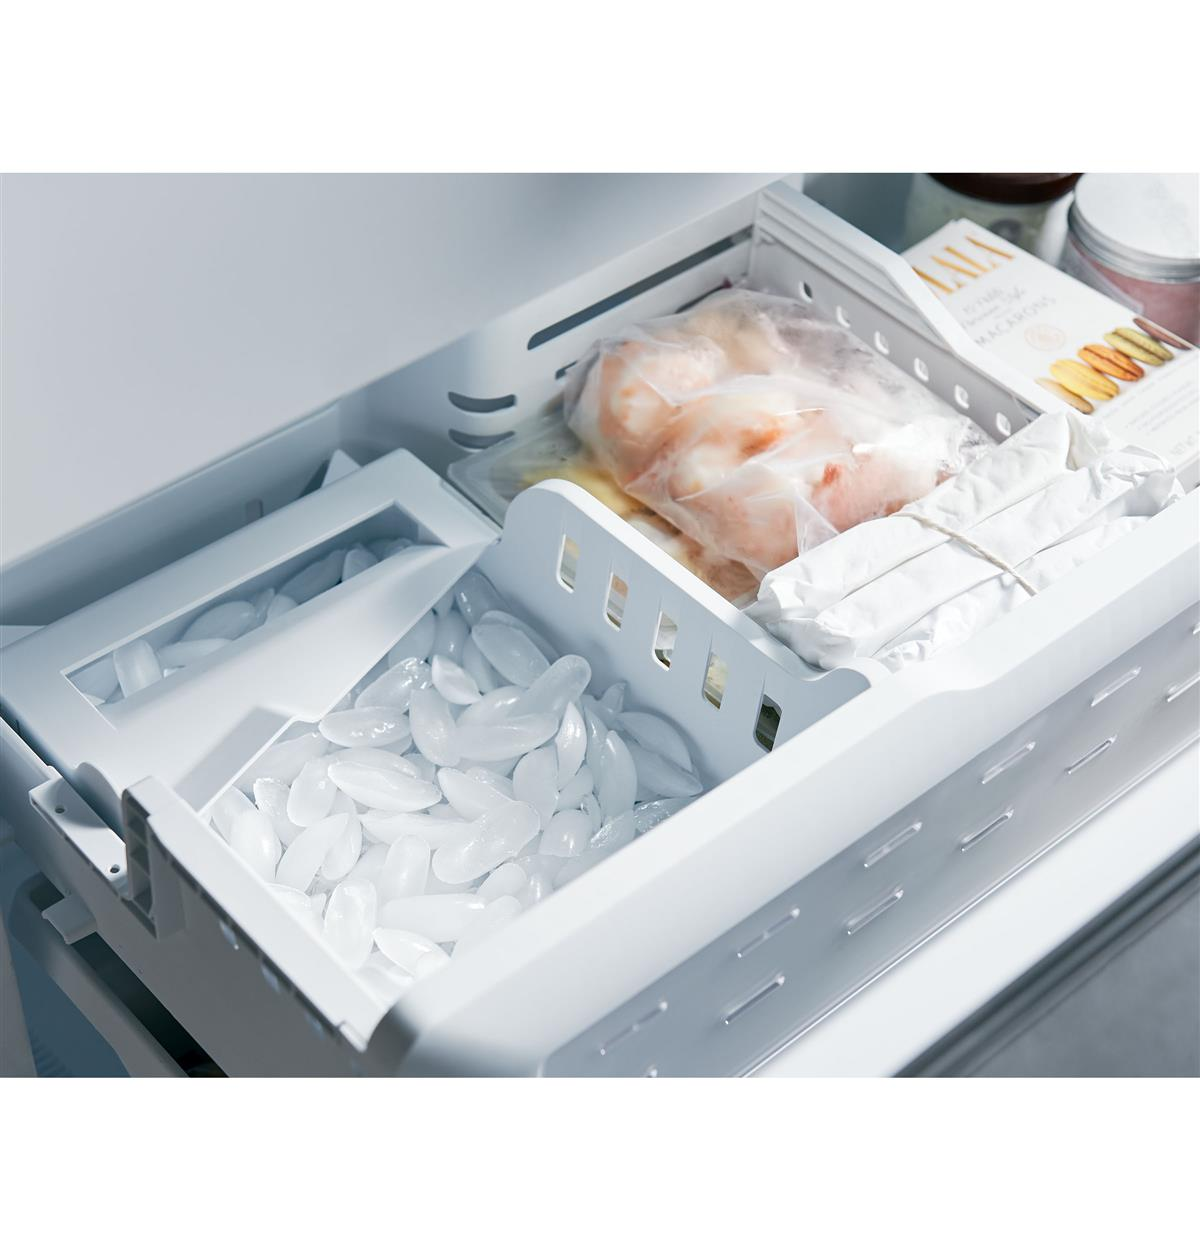 Factory-installed icemaker